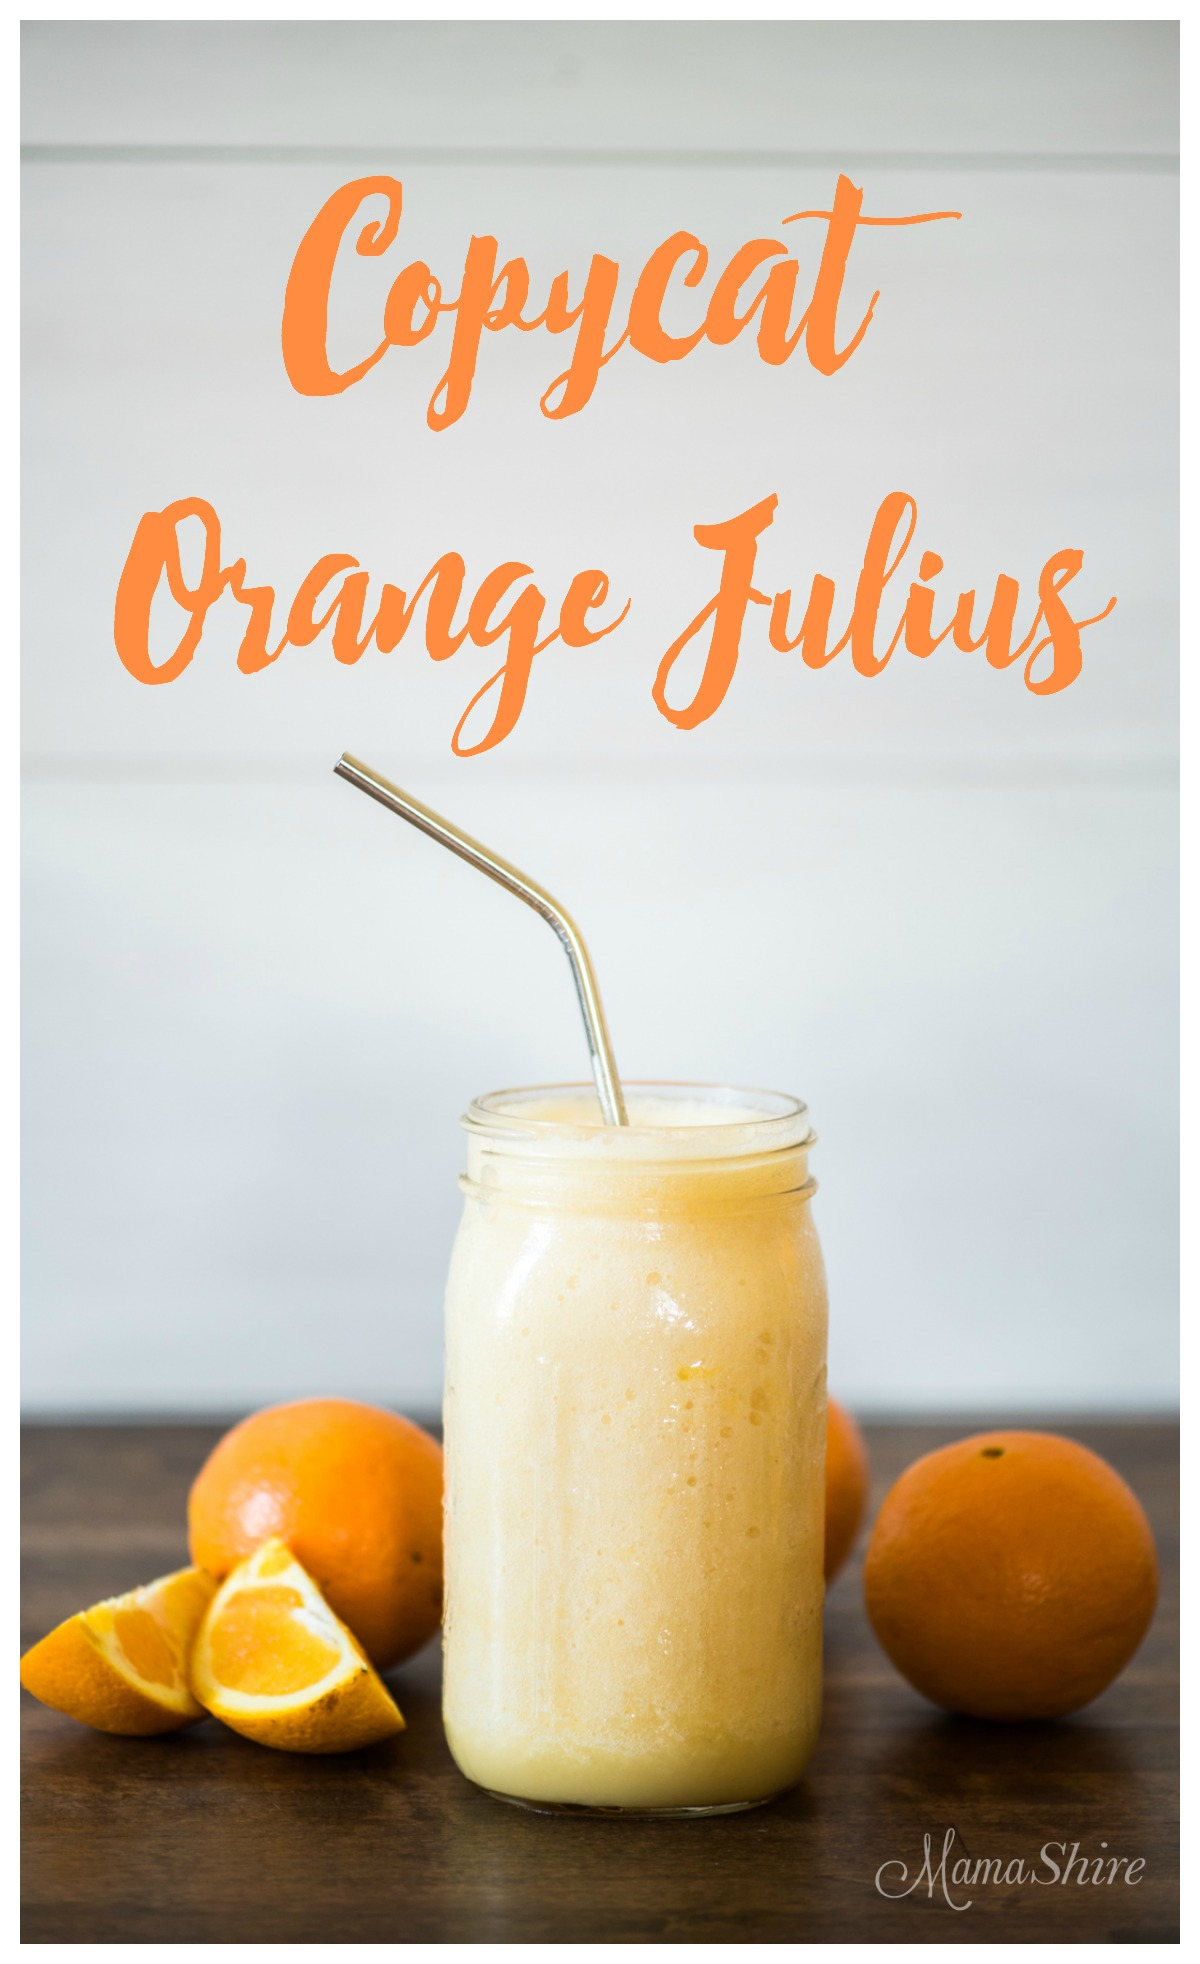 Copycat Orange Julius - Dairy-Free Sugar-Free Shakes, Frosties, and Smoothies